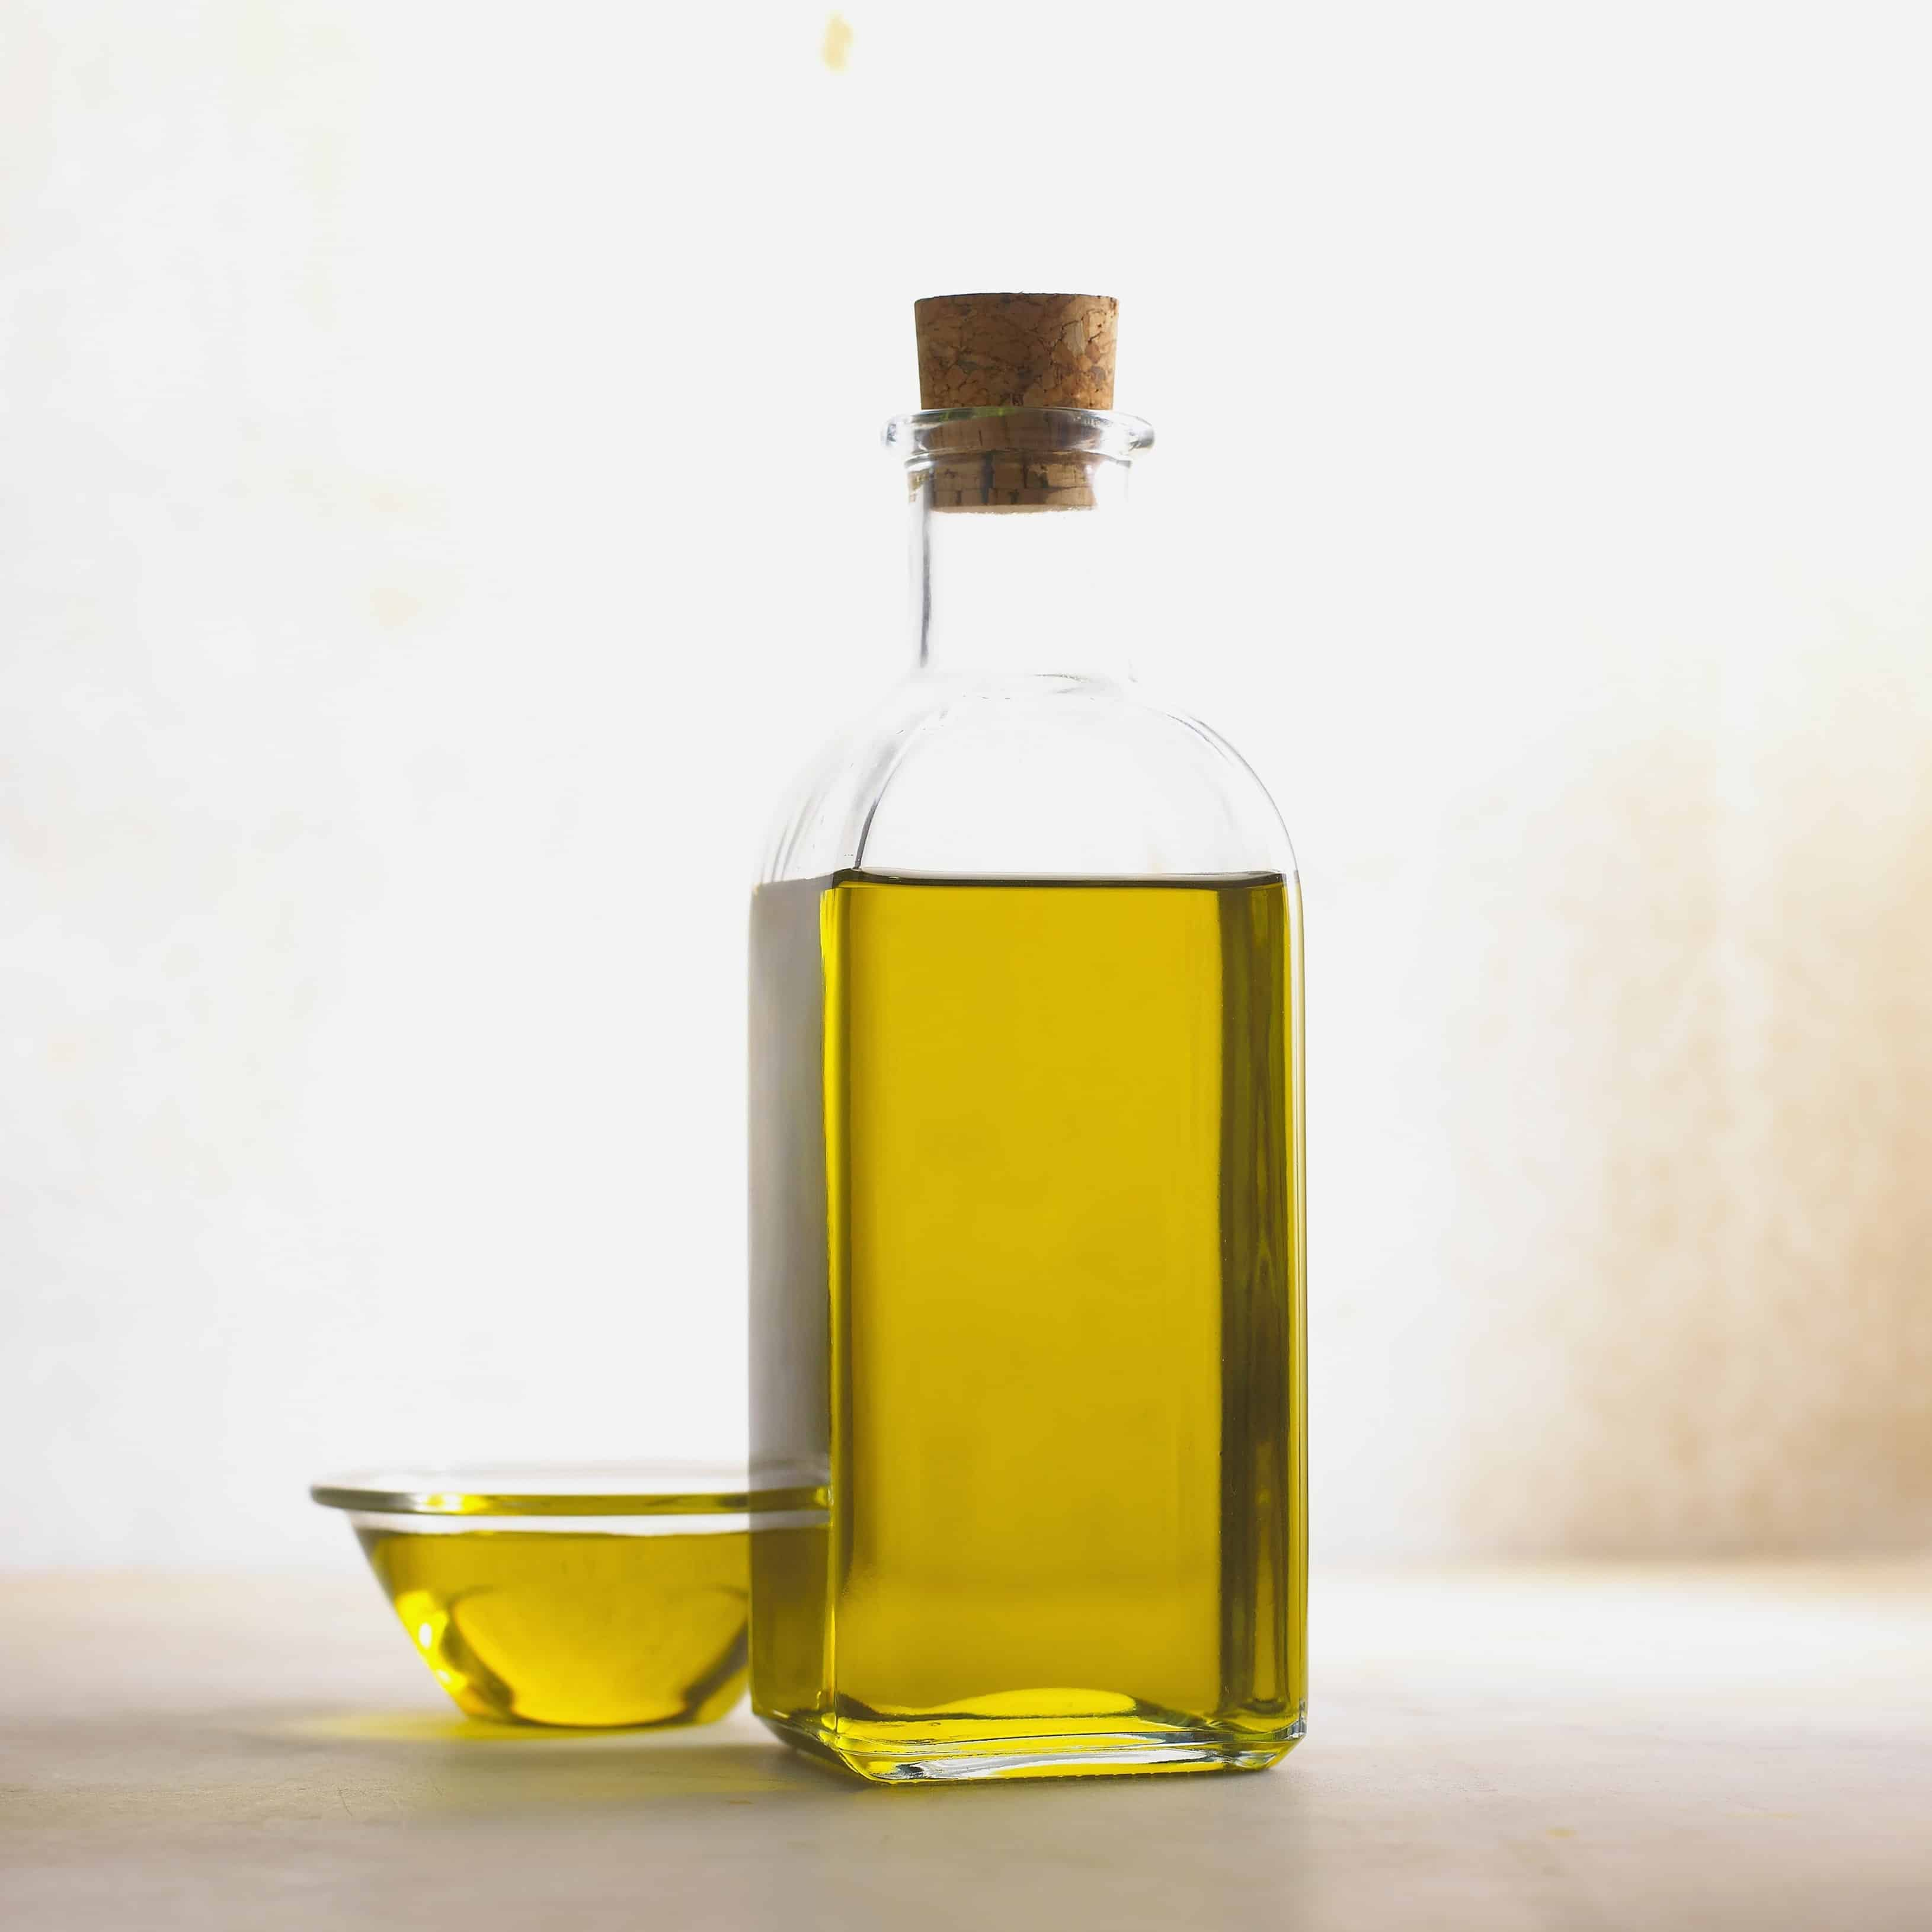 How to detox using oil pulling